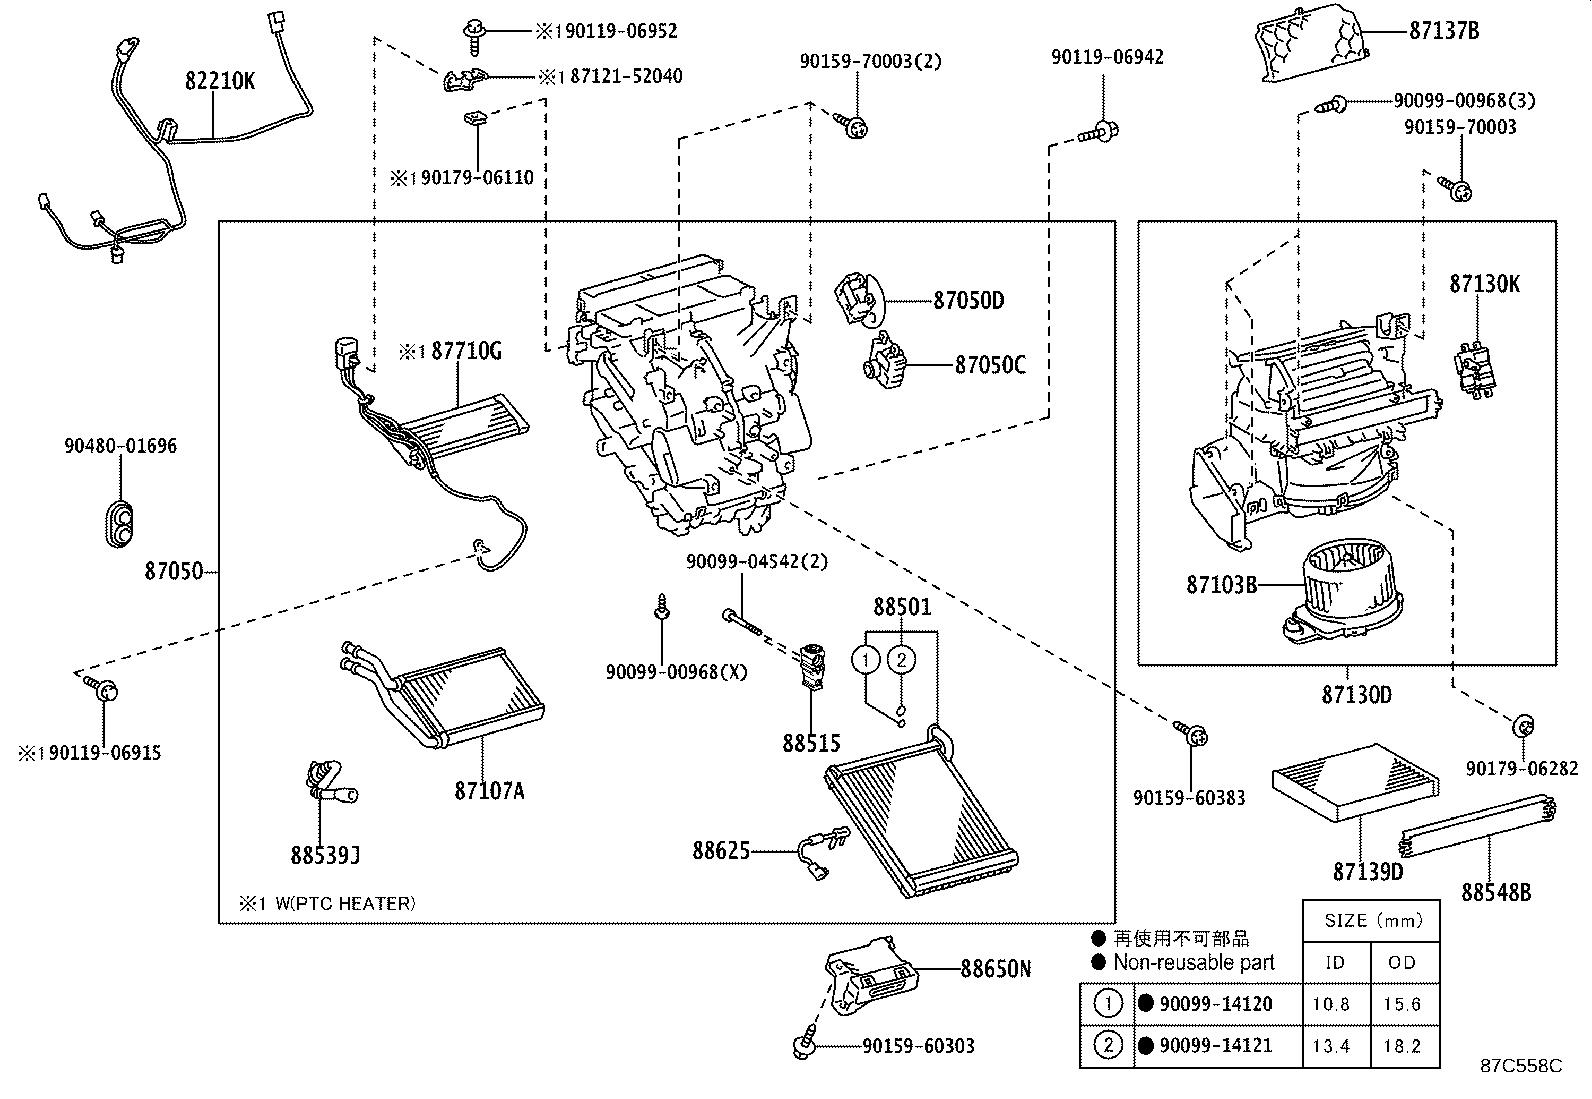 Diagram HEATING & AIR CONDITIONING - COOLER UNIT for your 2001 Toyota Sienna